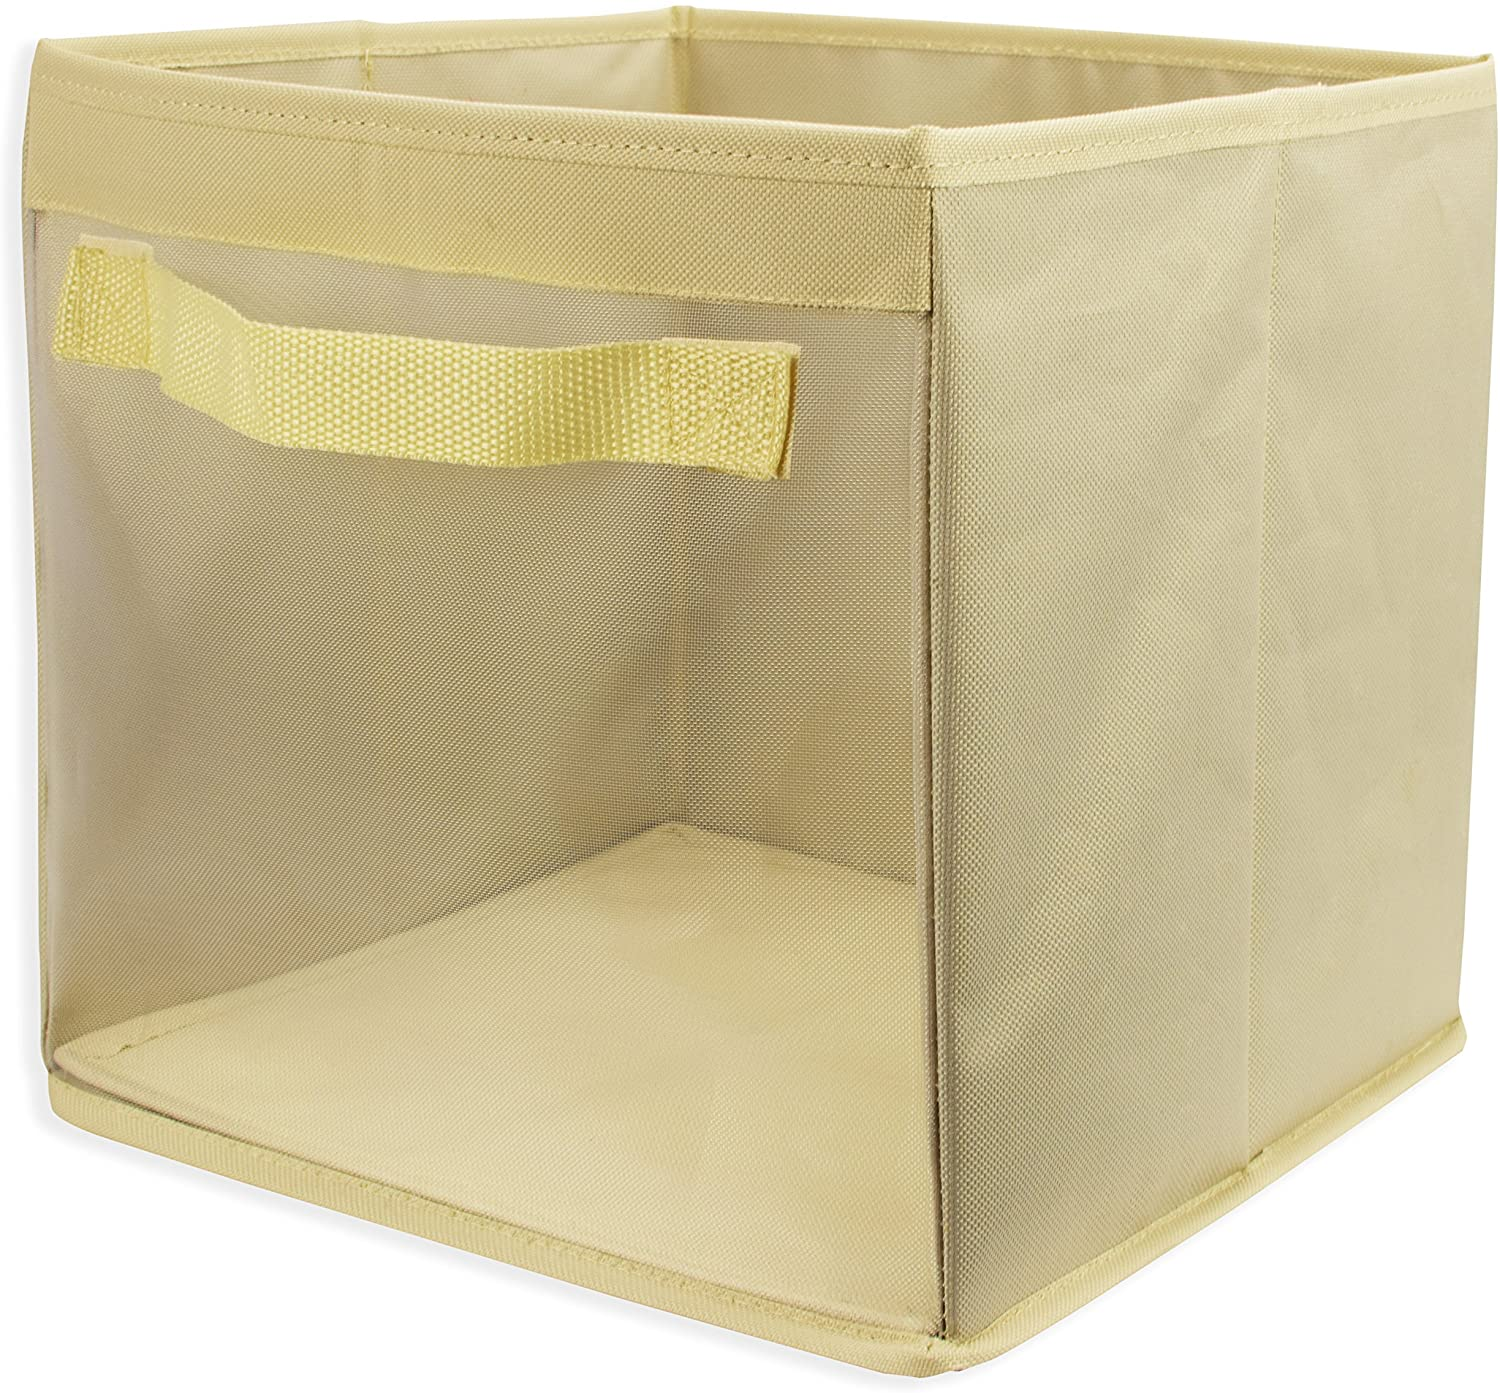 EASYVIEW Storage Cube with Clear View Mesh Window, 2-Handles All Woven Oxford Nylon Bin 10.5 x 10.5 x 10-Inches, Folds Flat (Off-White)